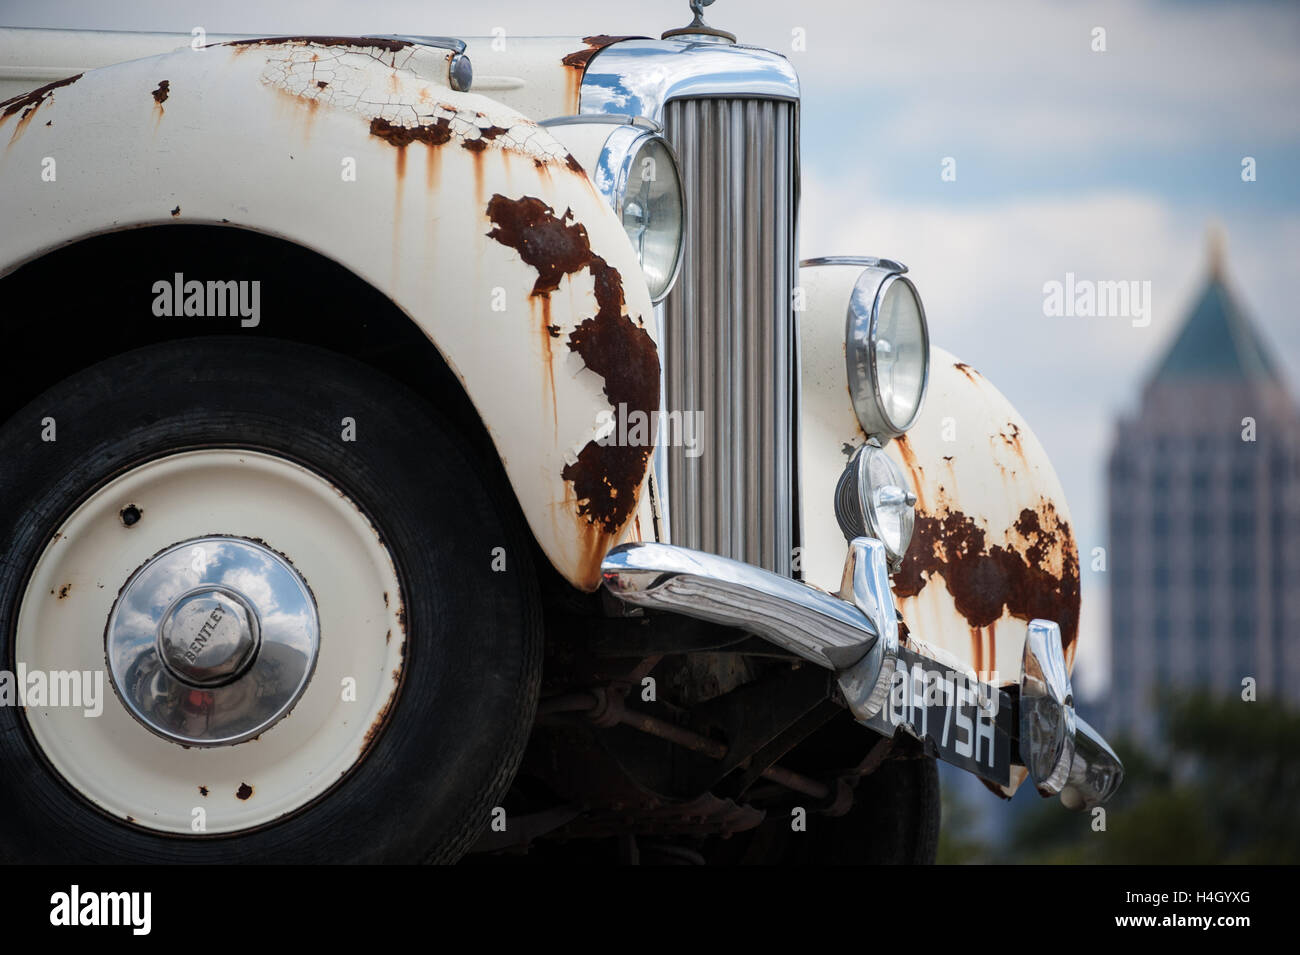 British classic white Bentley, a luxury icon of a former age, sits rusting near downtown Atlanta, Georgia. - Stock Image